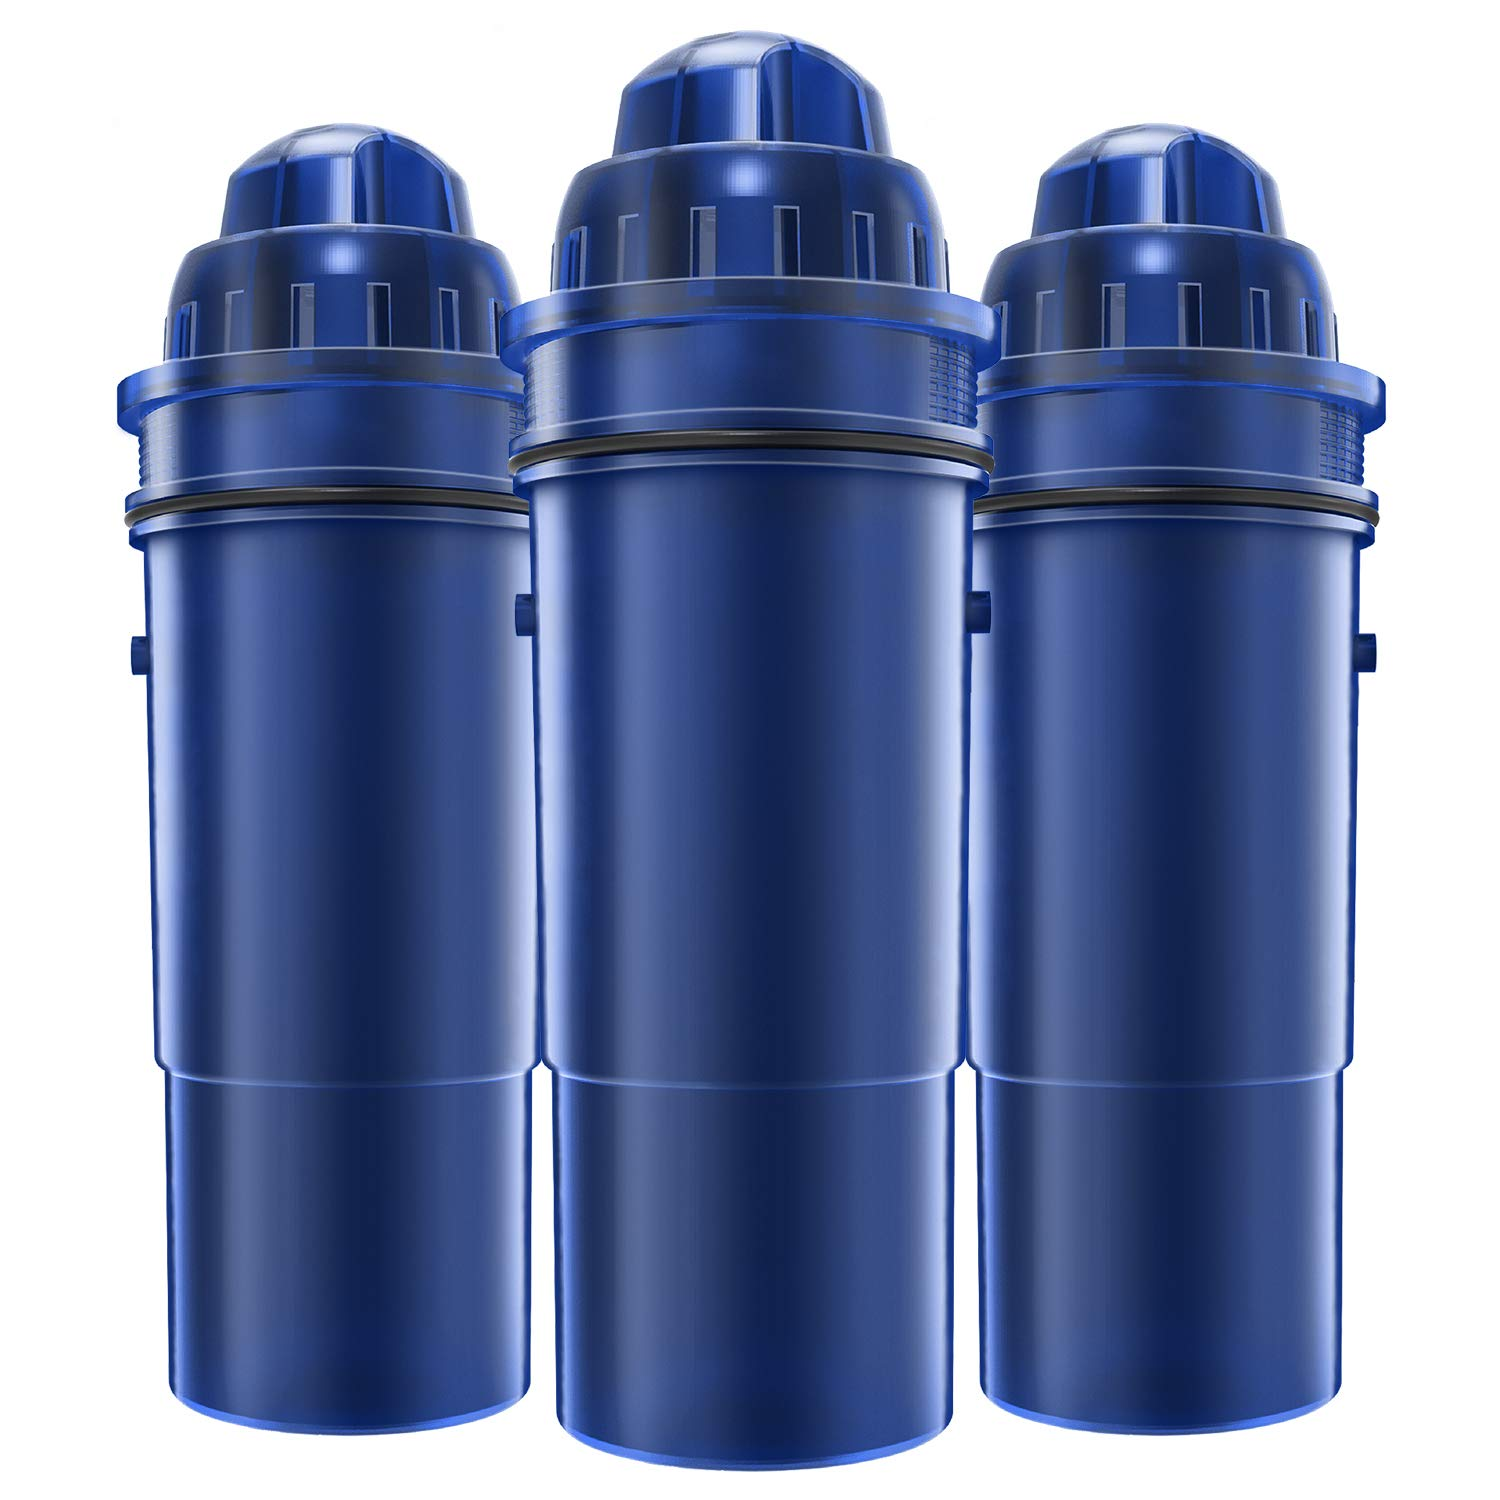 AQUACREST CRF-950Z Pitcher Water Filter, Compatible with Pur Pitchers and Dispensers PPT700W, CR-1100C, DS-1800Z and More (Pack of 3) by AQUA CREST